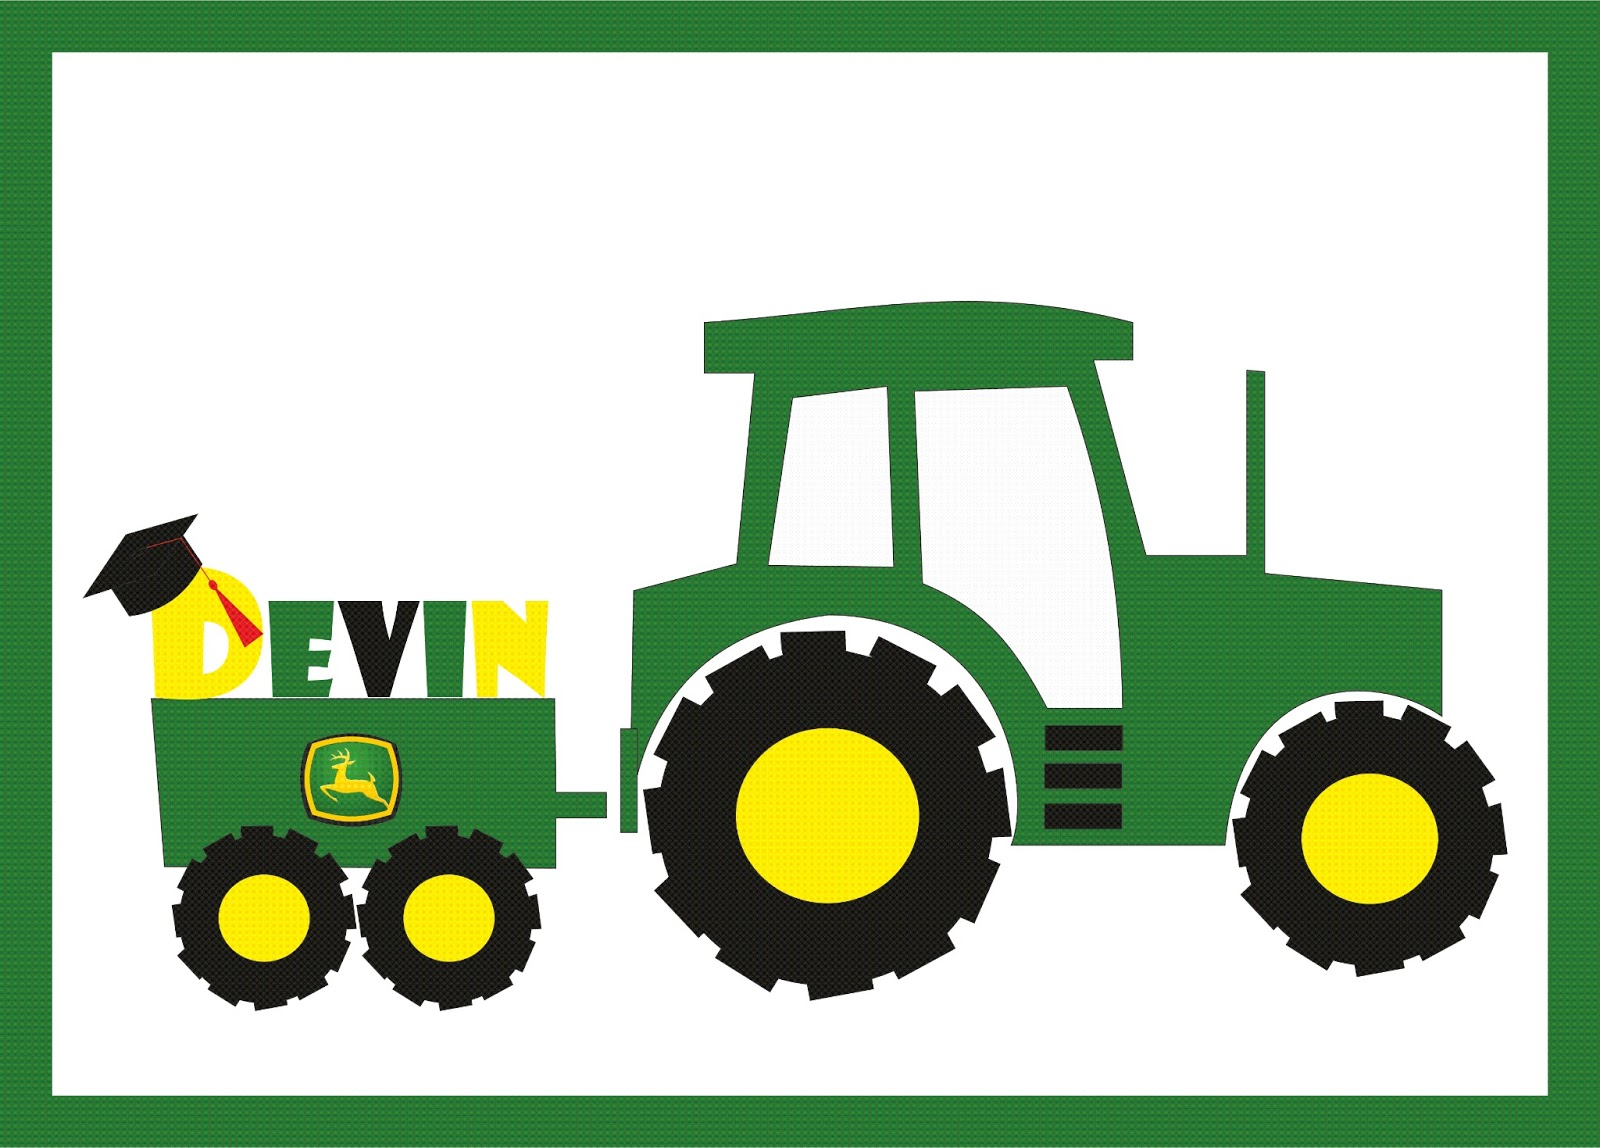 Backhoe clipart simple. Silhouette at getdrawings com